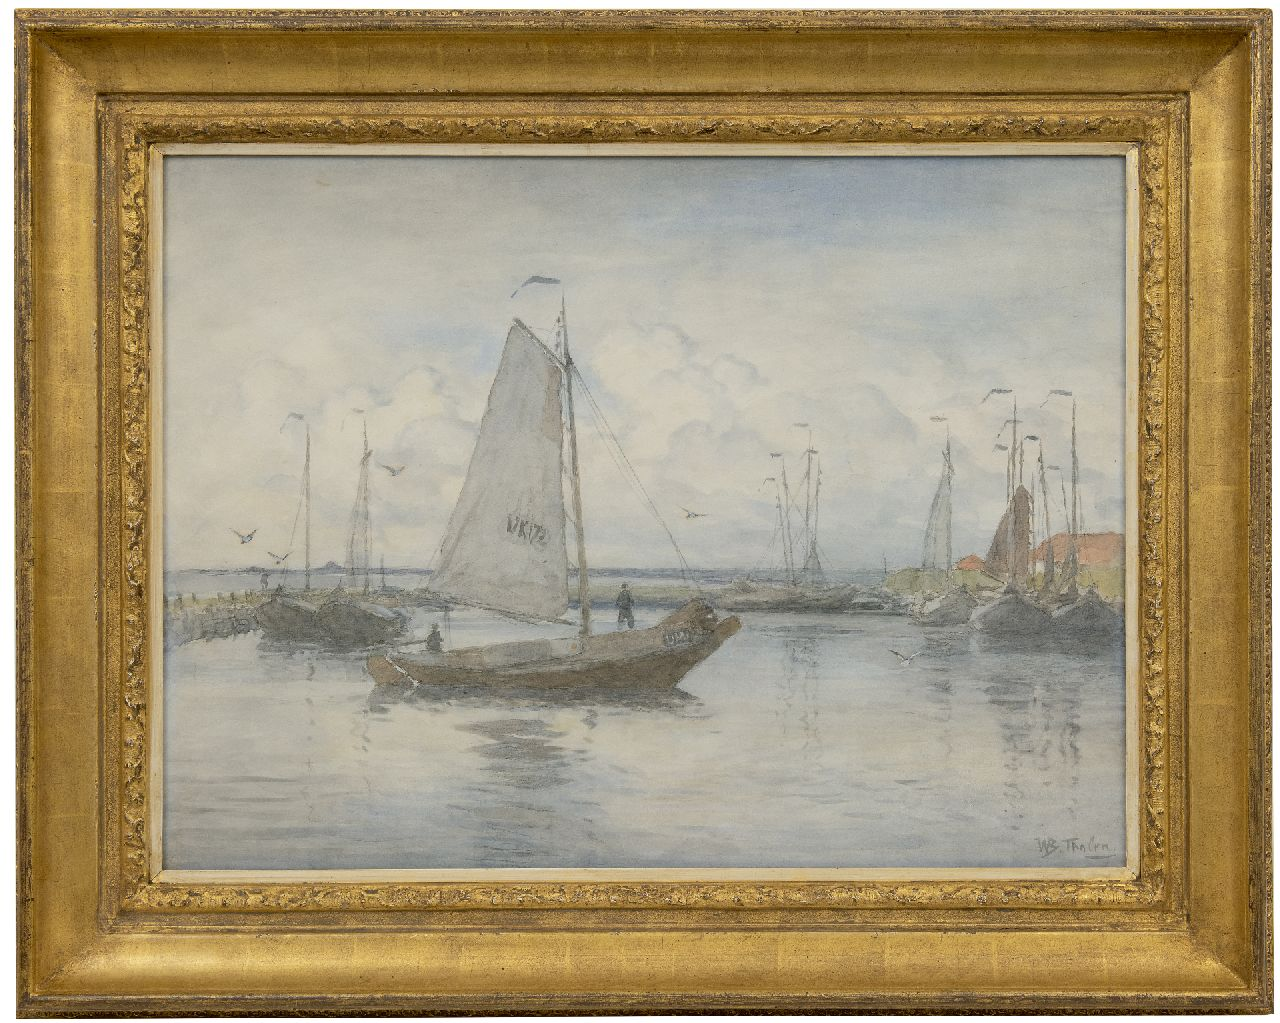 Tholen W.B.  | Willem Bastiaan Tholen | Watercolours and drawings offered for sale | Botter entering the harbour, watercolour on paper 51.1 x 70.0 cm, signed l.r.